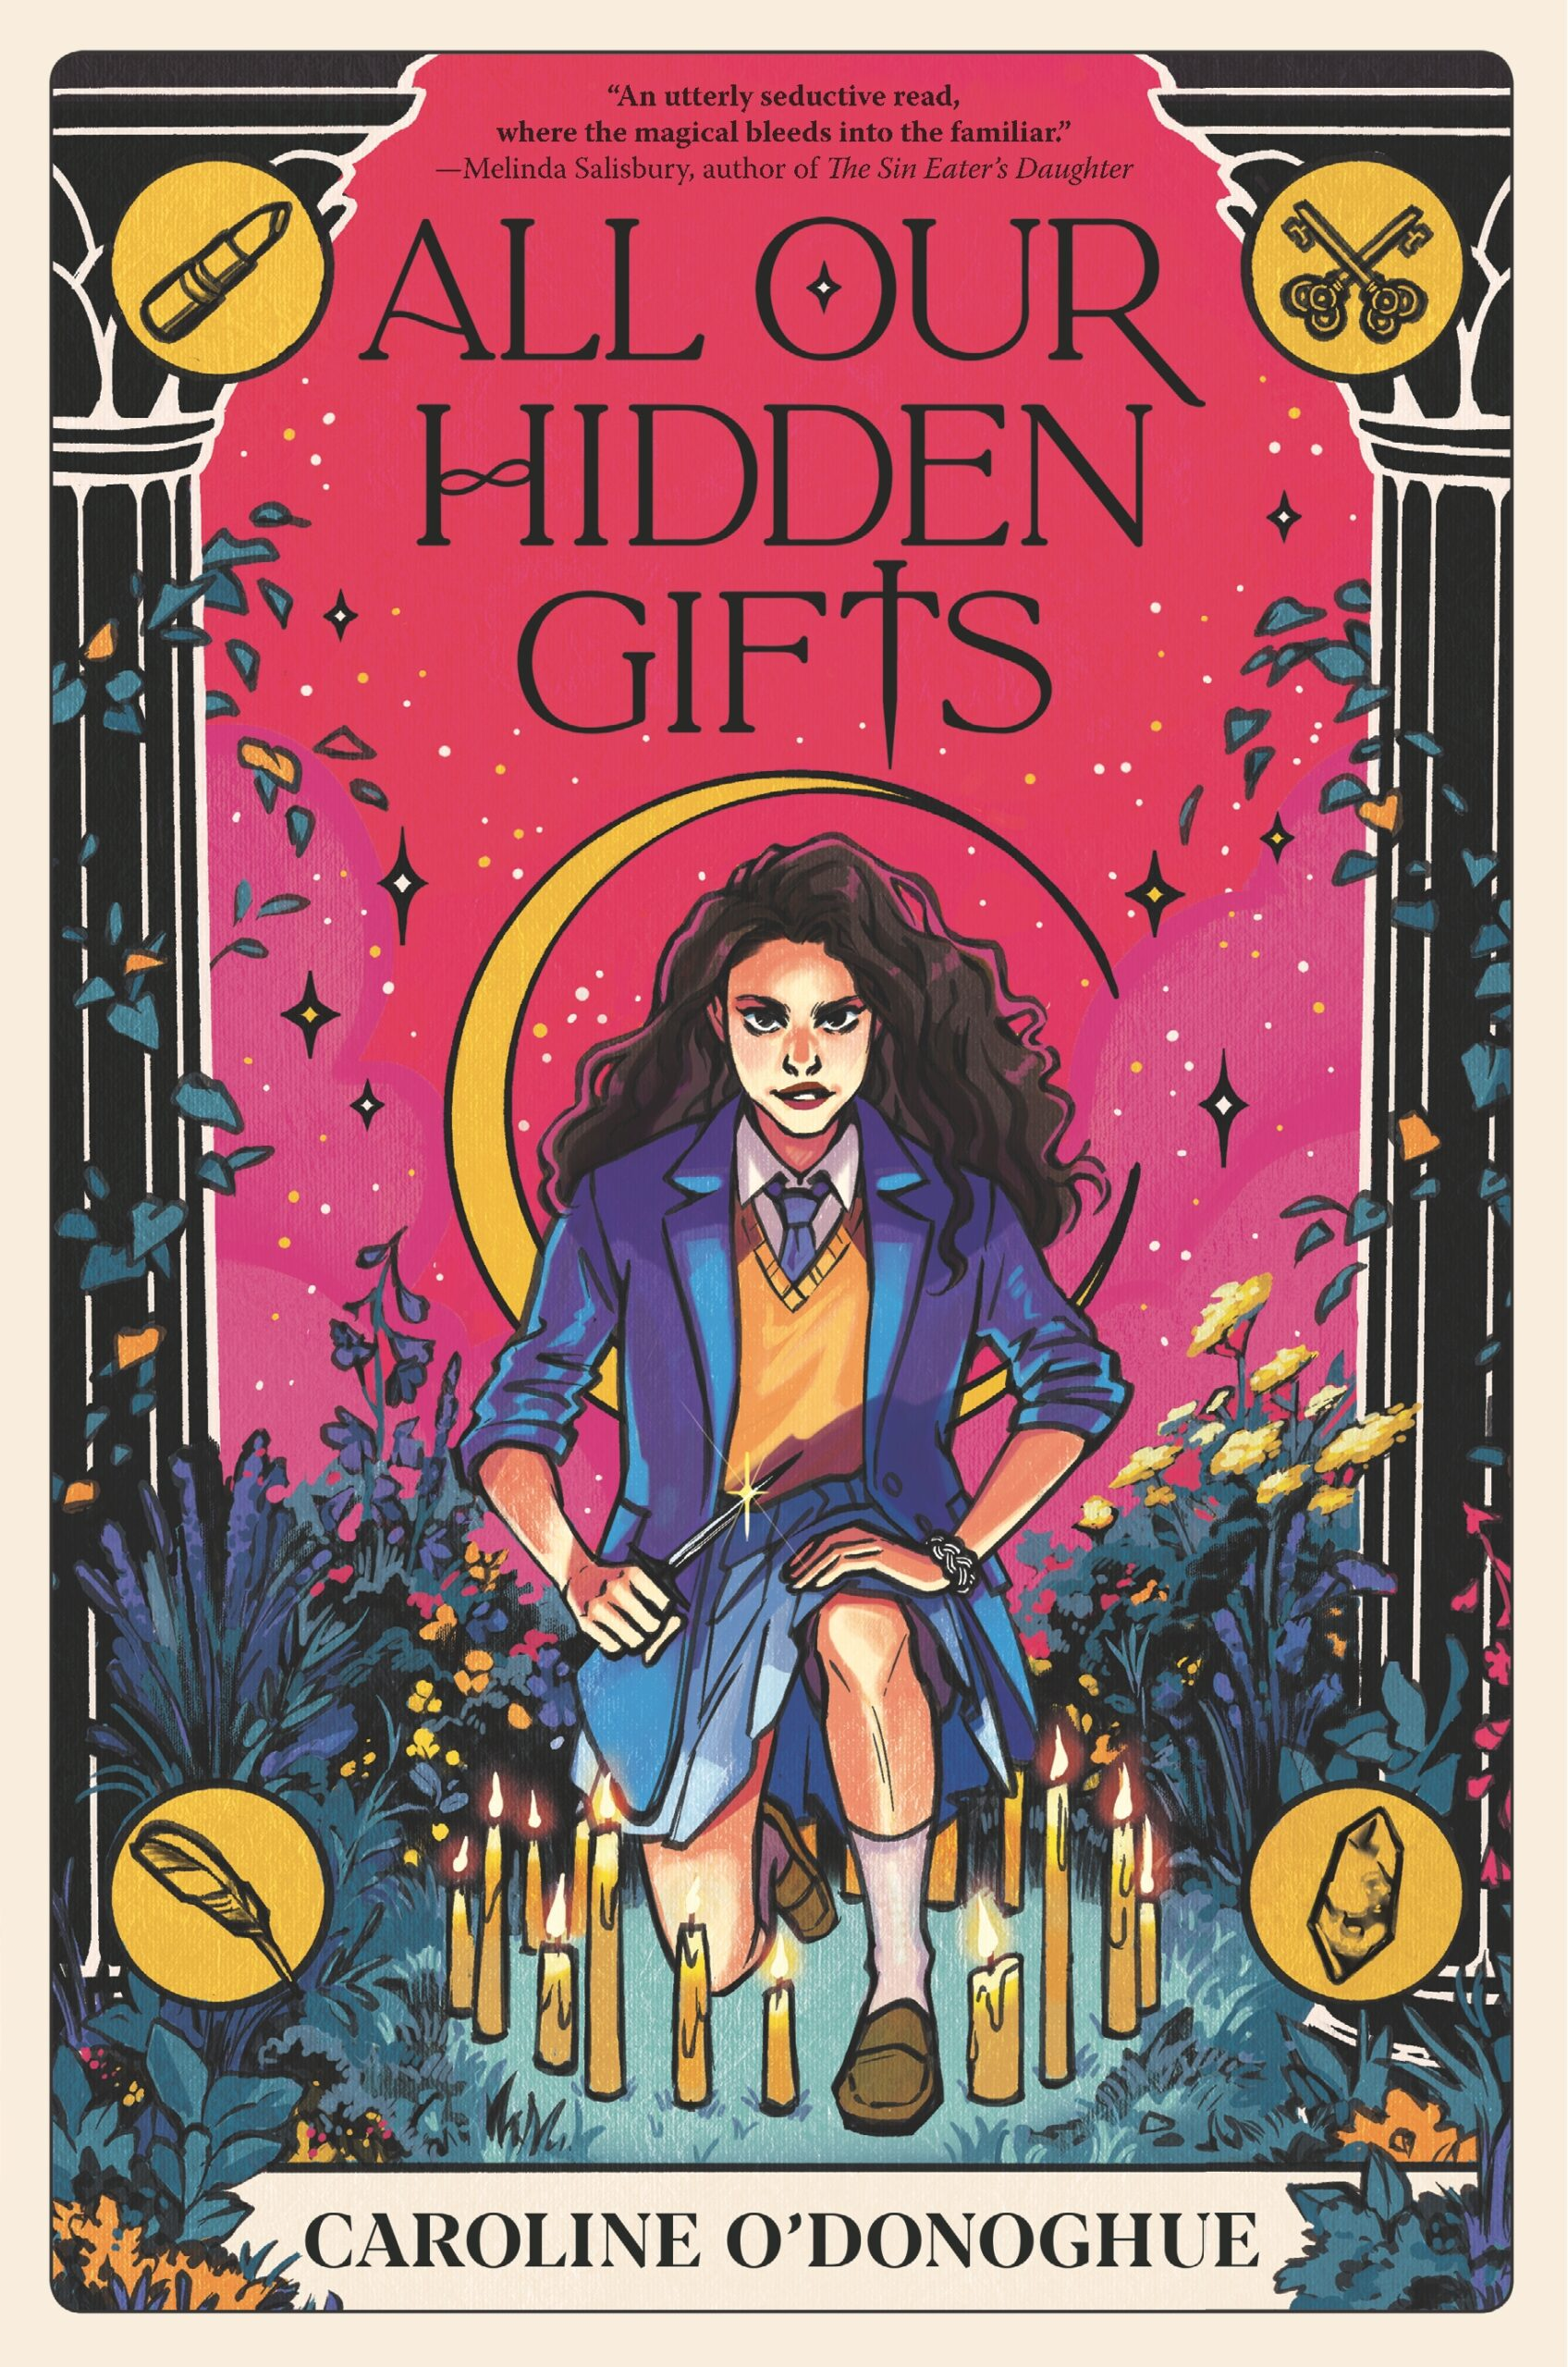 The cover of All Our Hidden Gifts by Caroline O'Donoghue